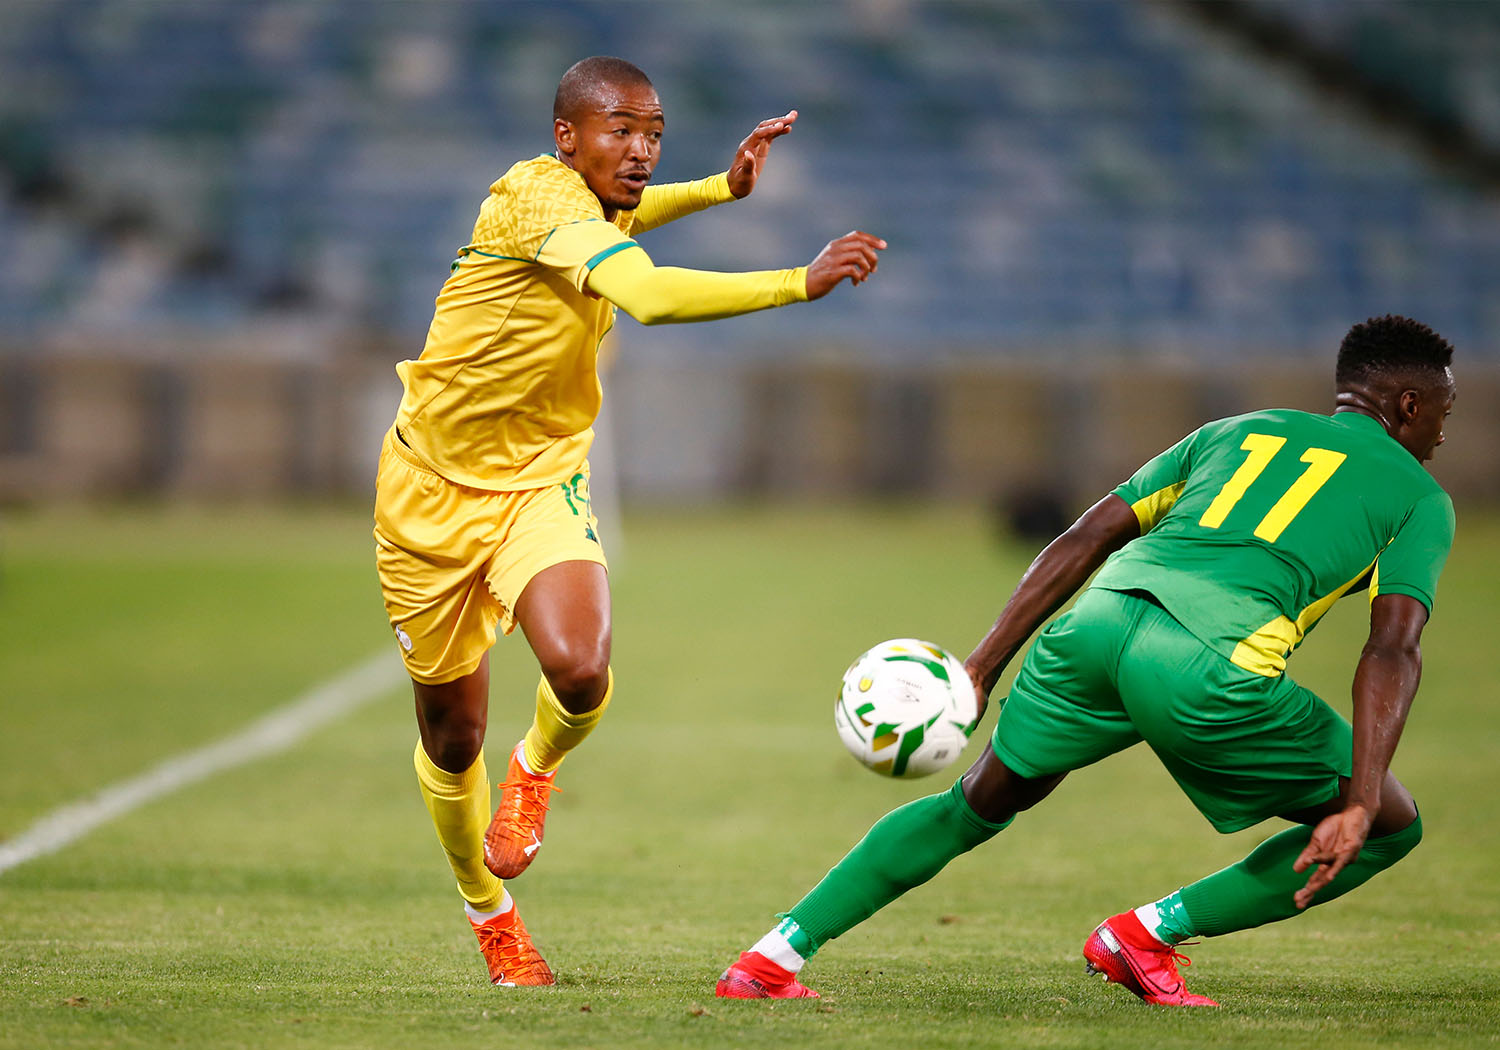 Brazilians On National Duty As World Cup Qualifiers Begin